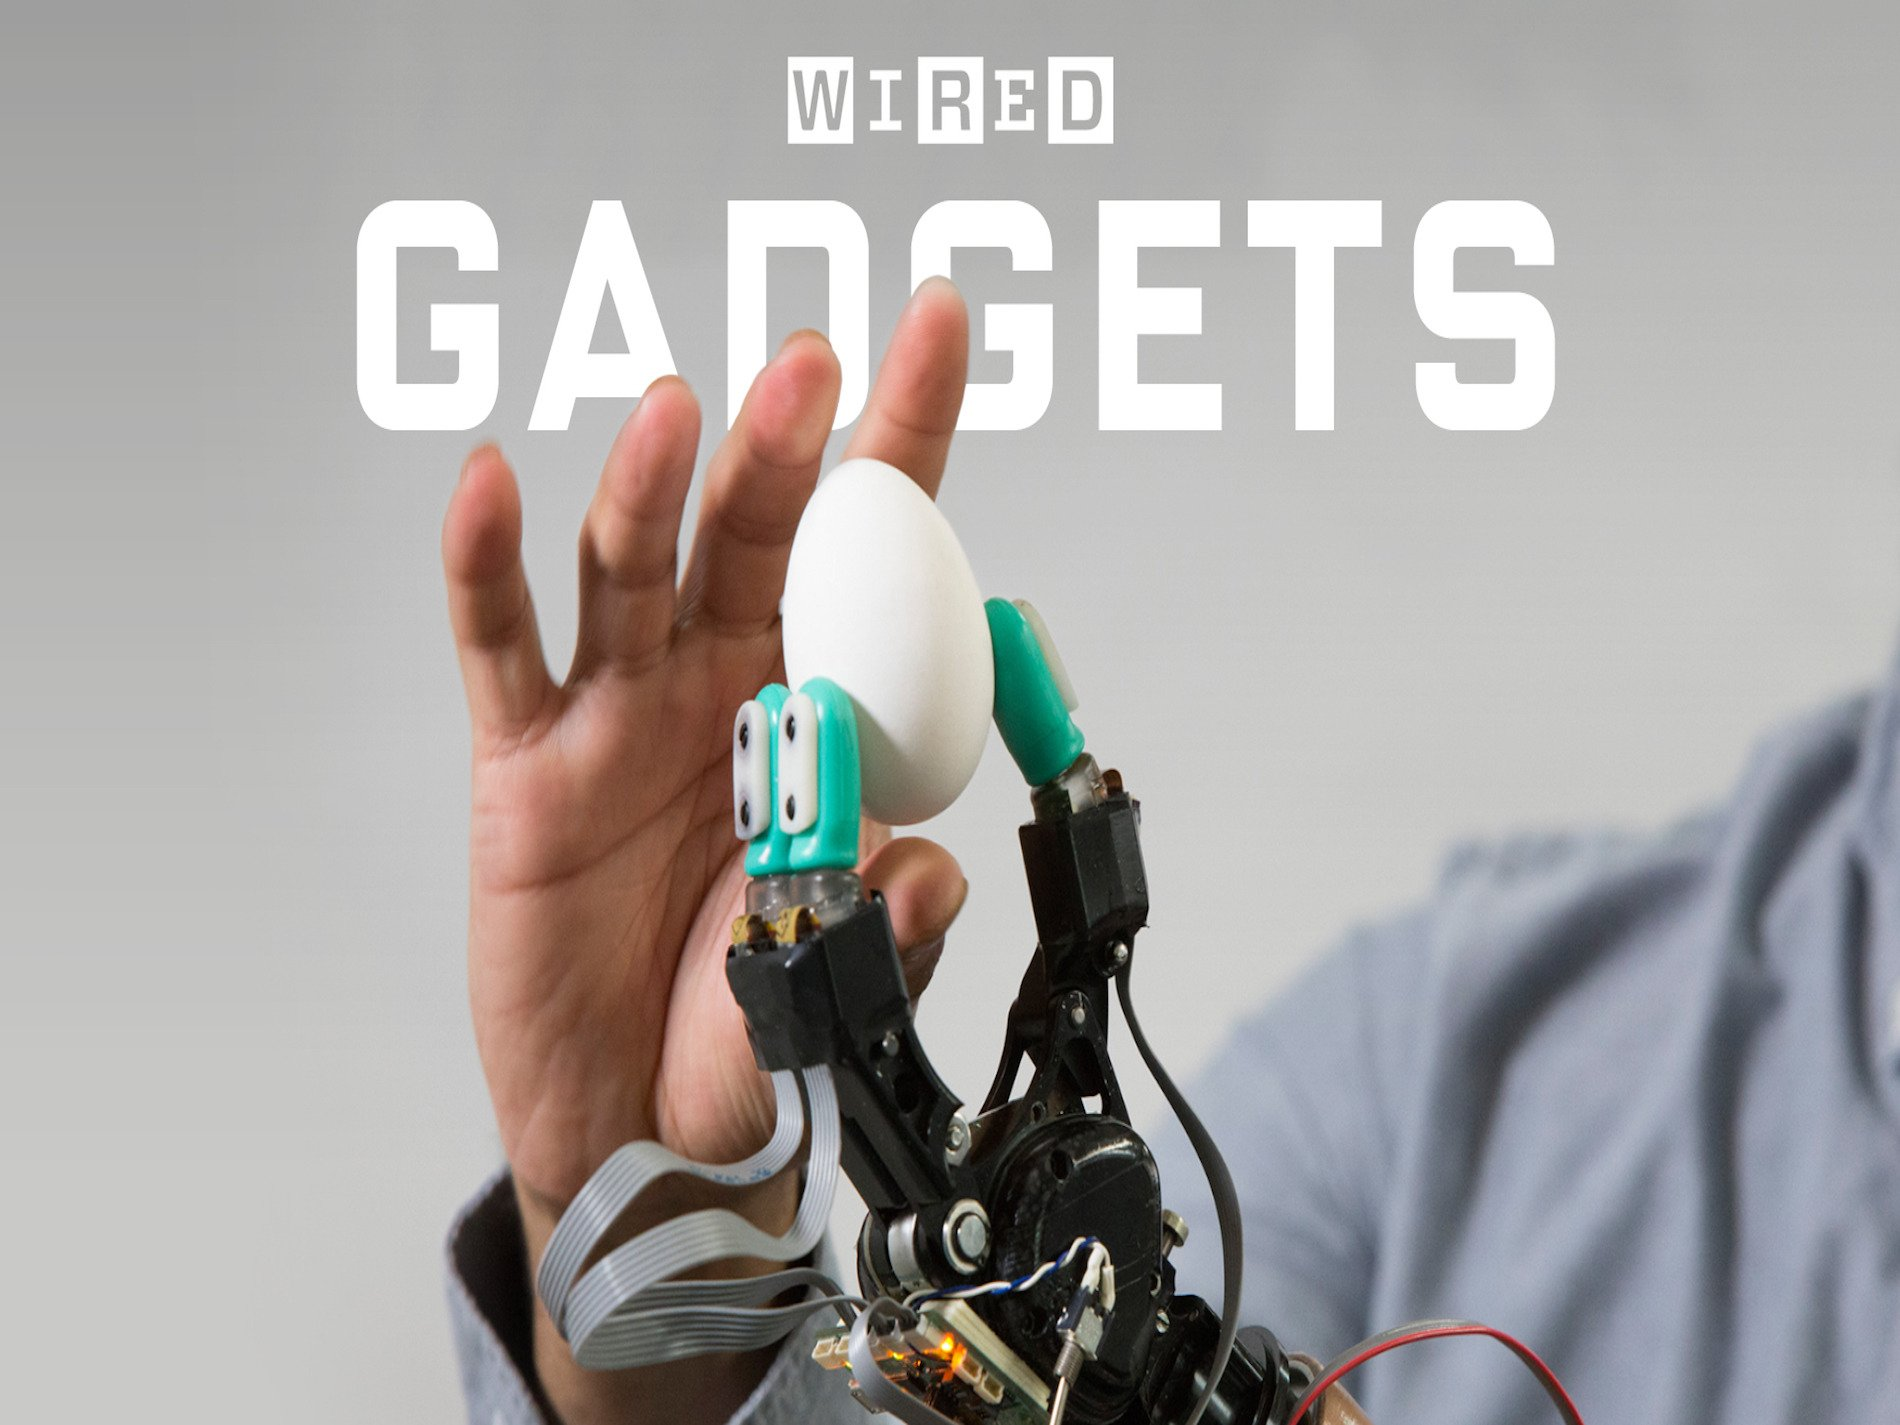 Clip: WIRED Gadgets